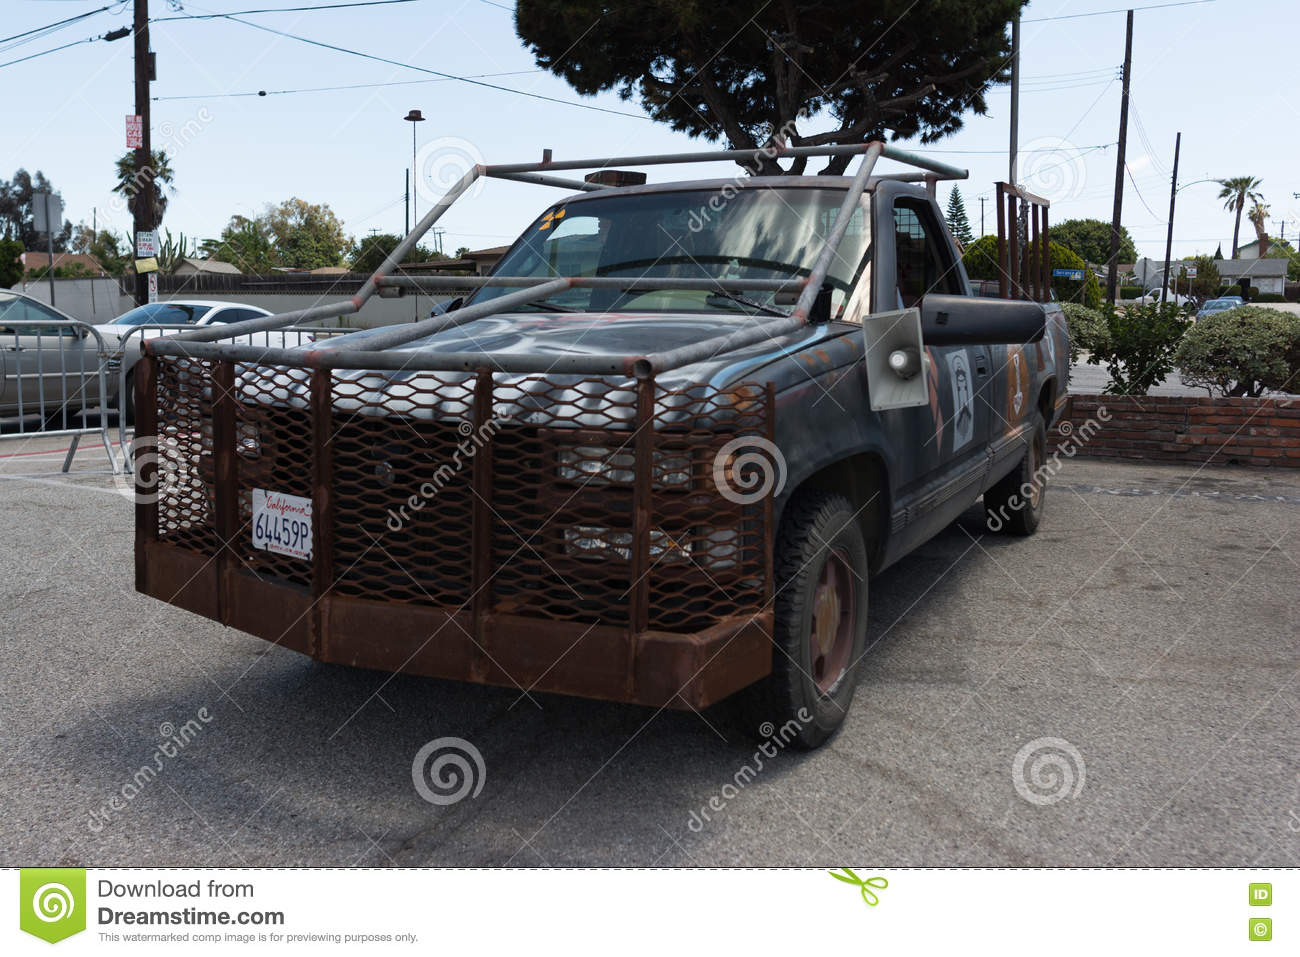 Truck post apocalyptic survival vehicle royalty free stock photos